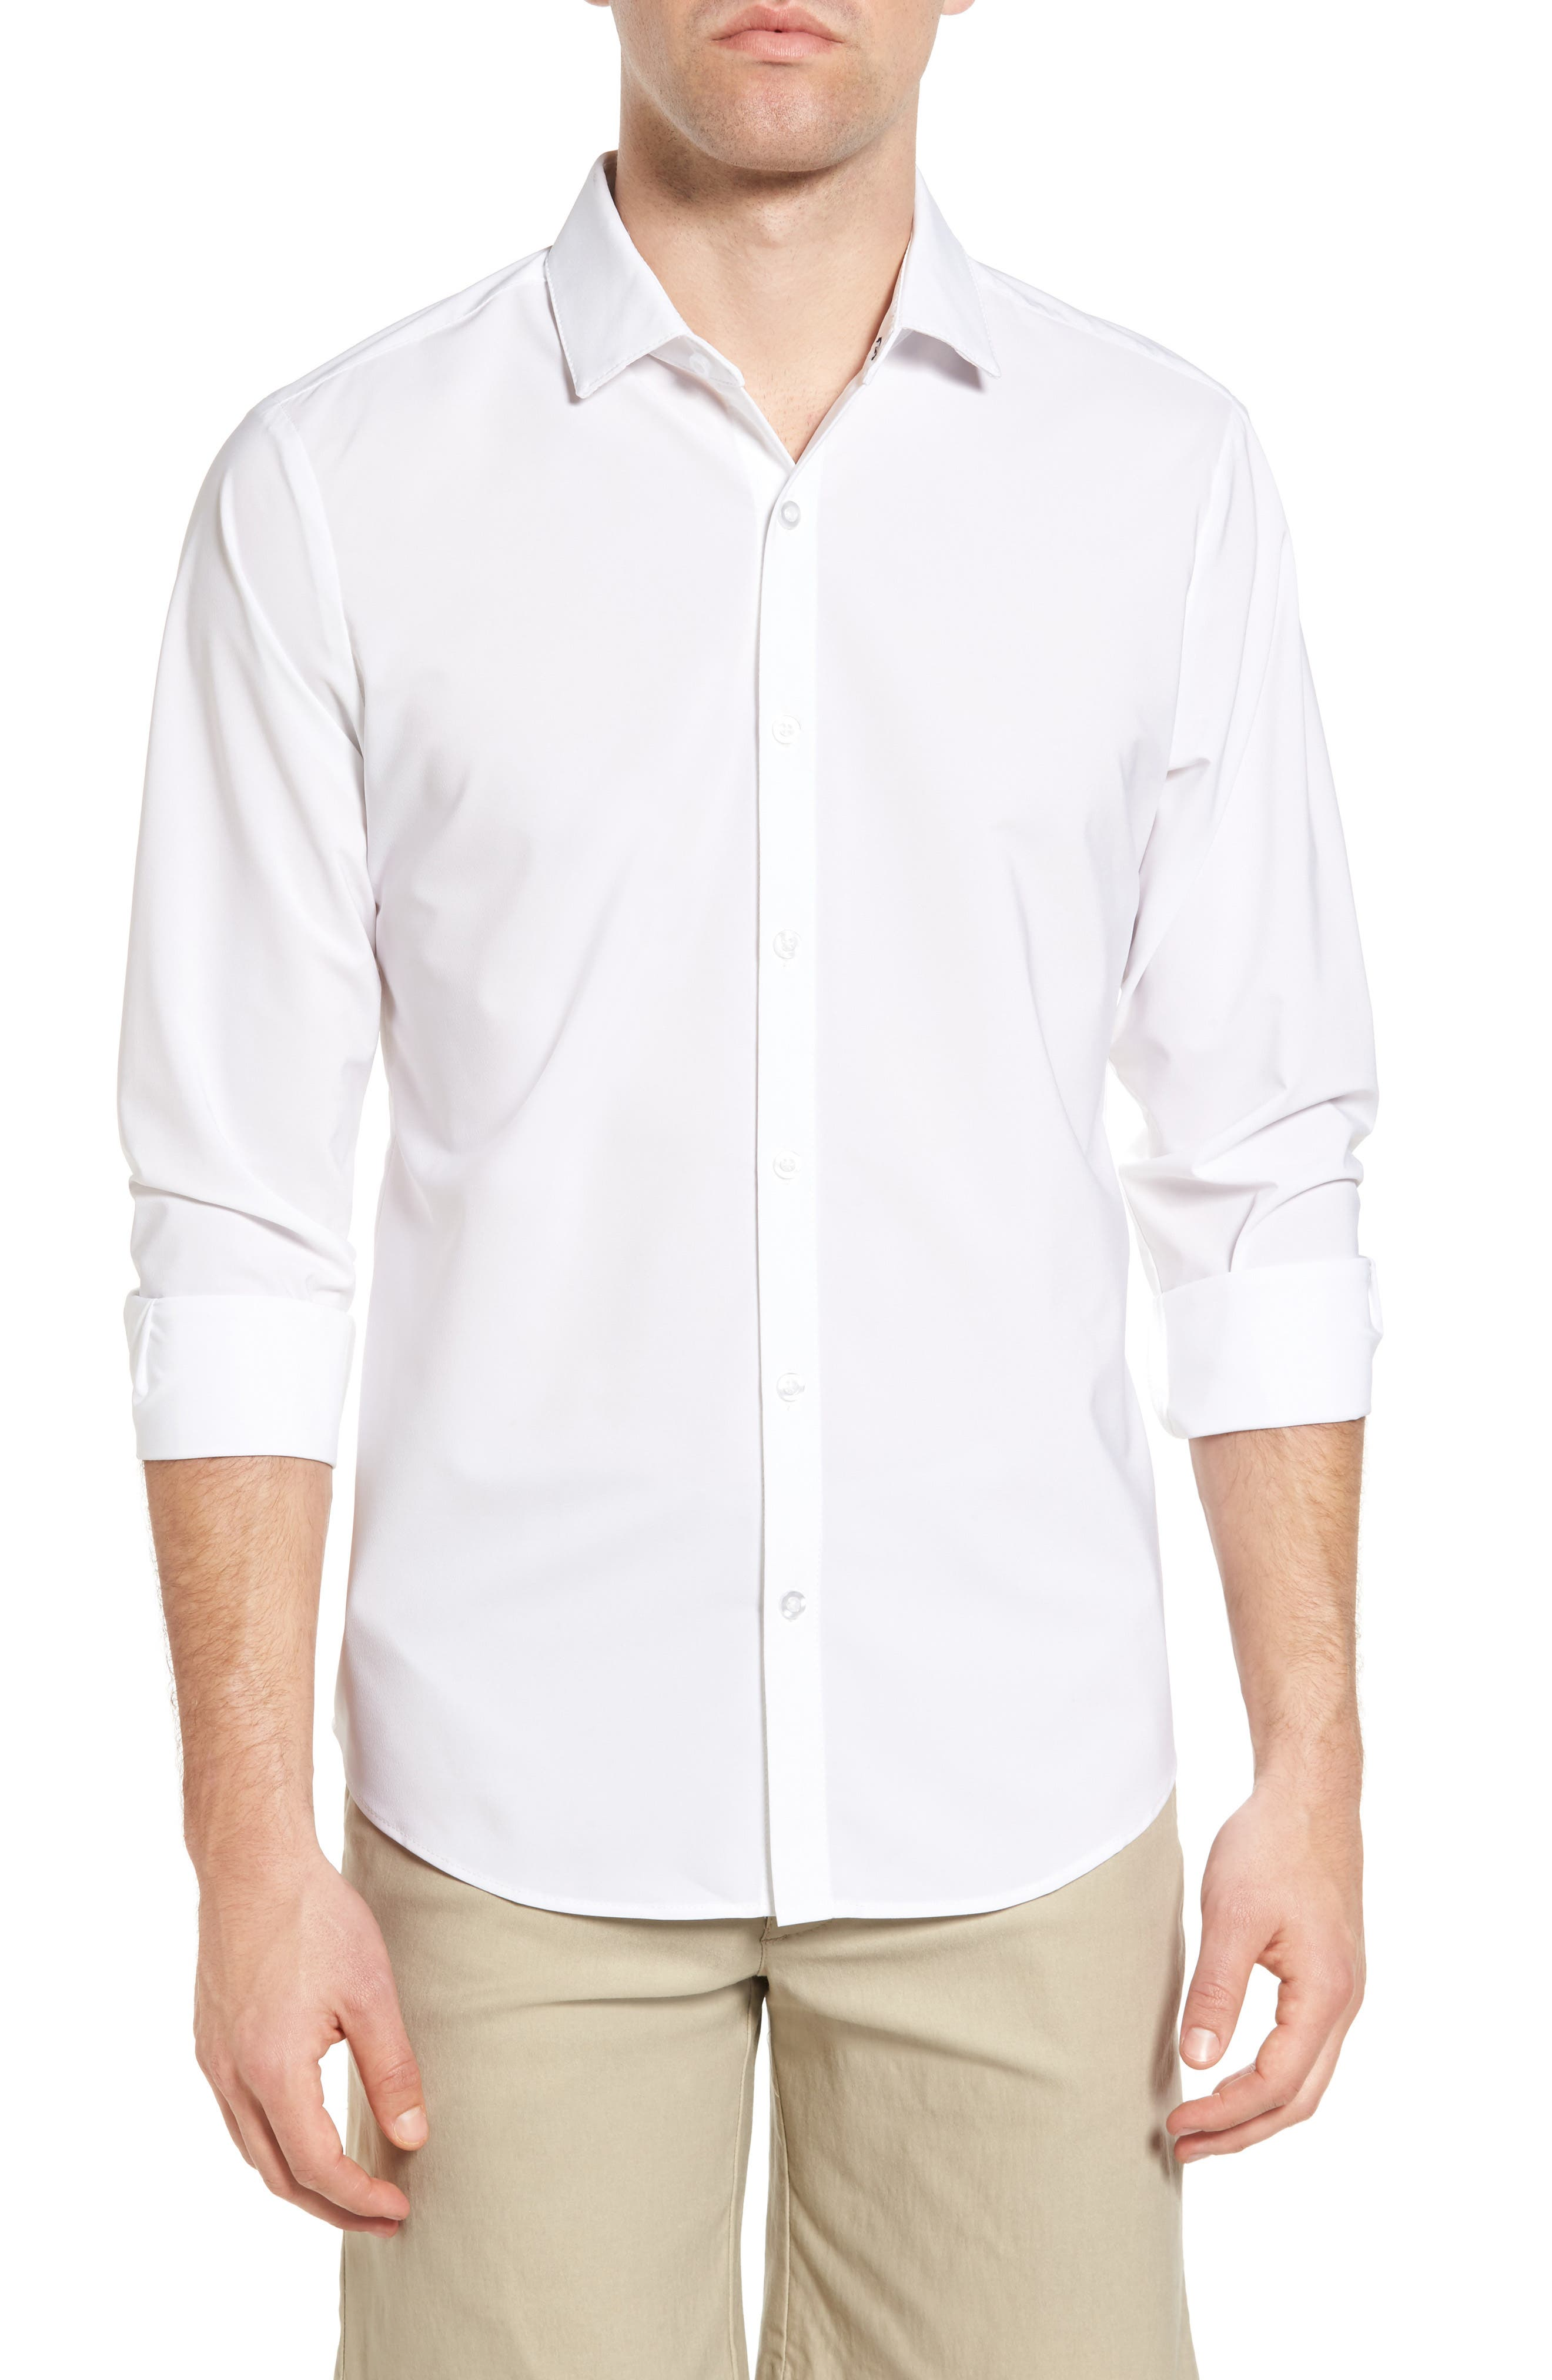 Manhattan Sport Shirt,                             Main thumbnail 1, color,                             White